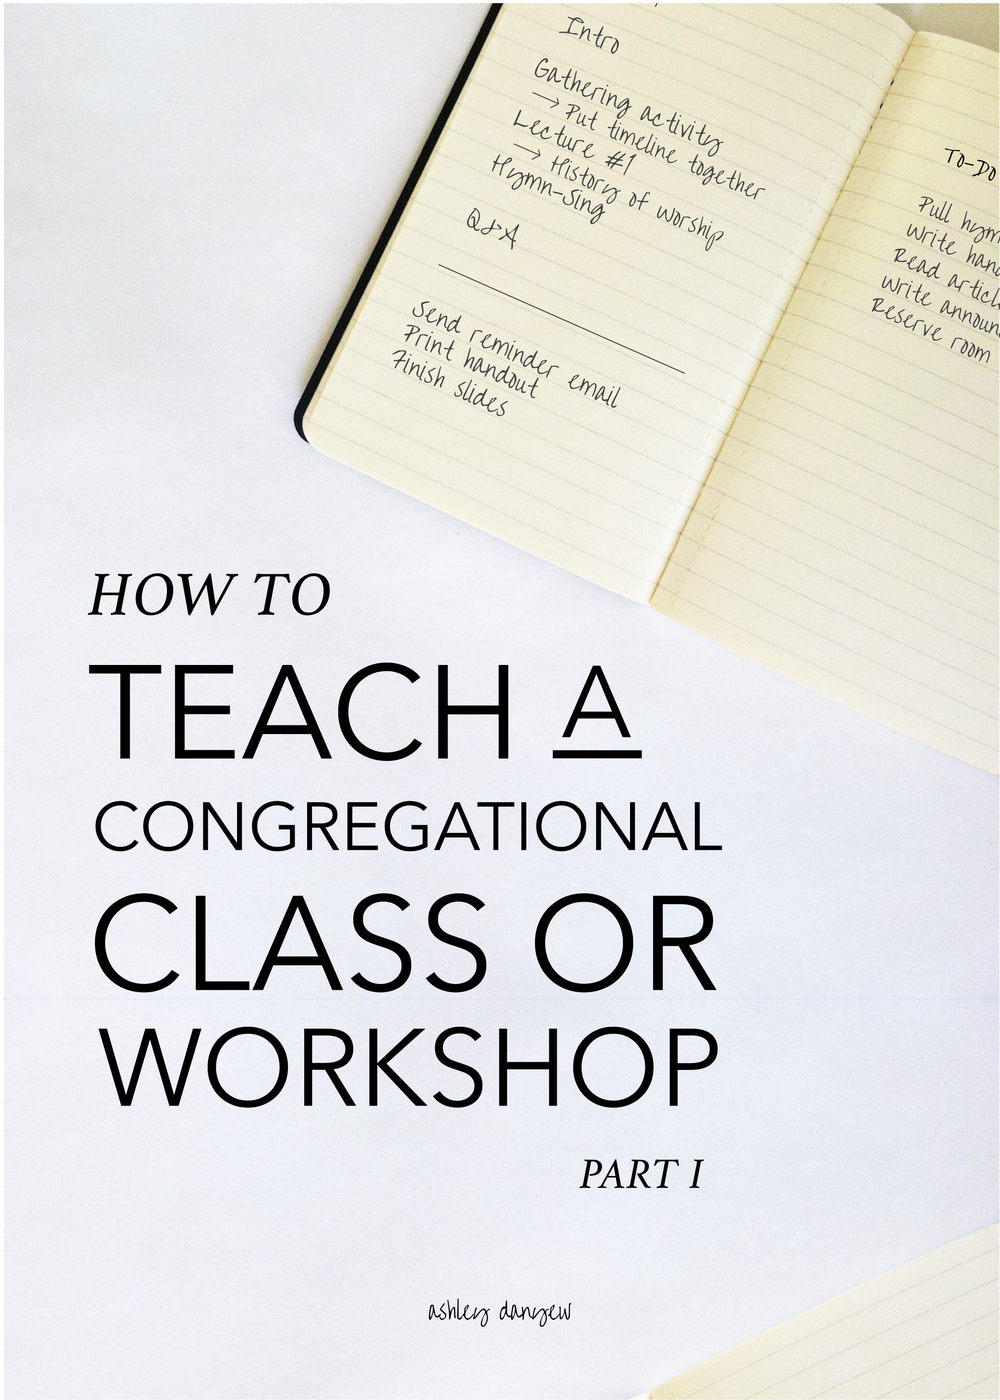 Copy of How to Teach a Congregational Class or Workshop - Part I